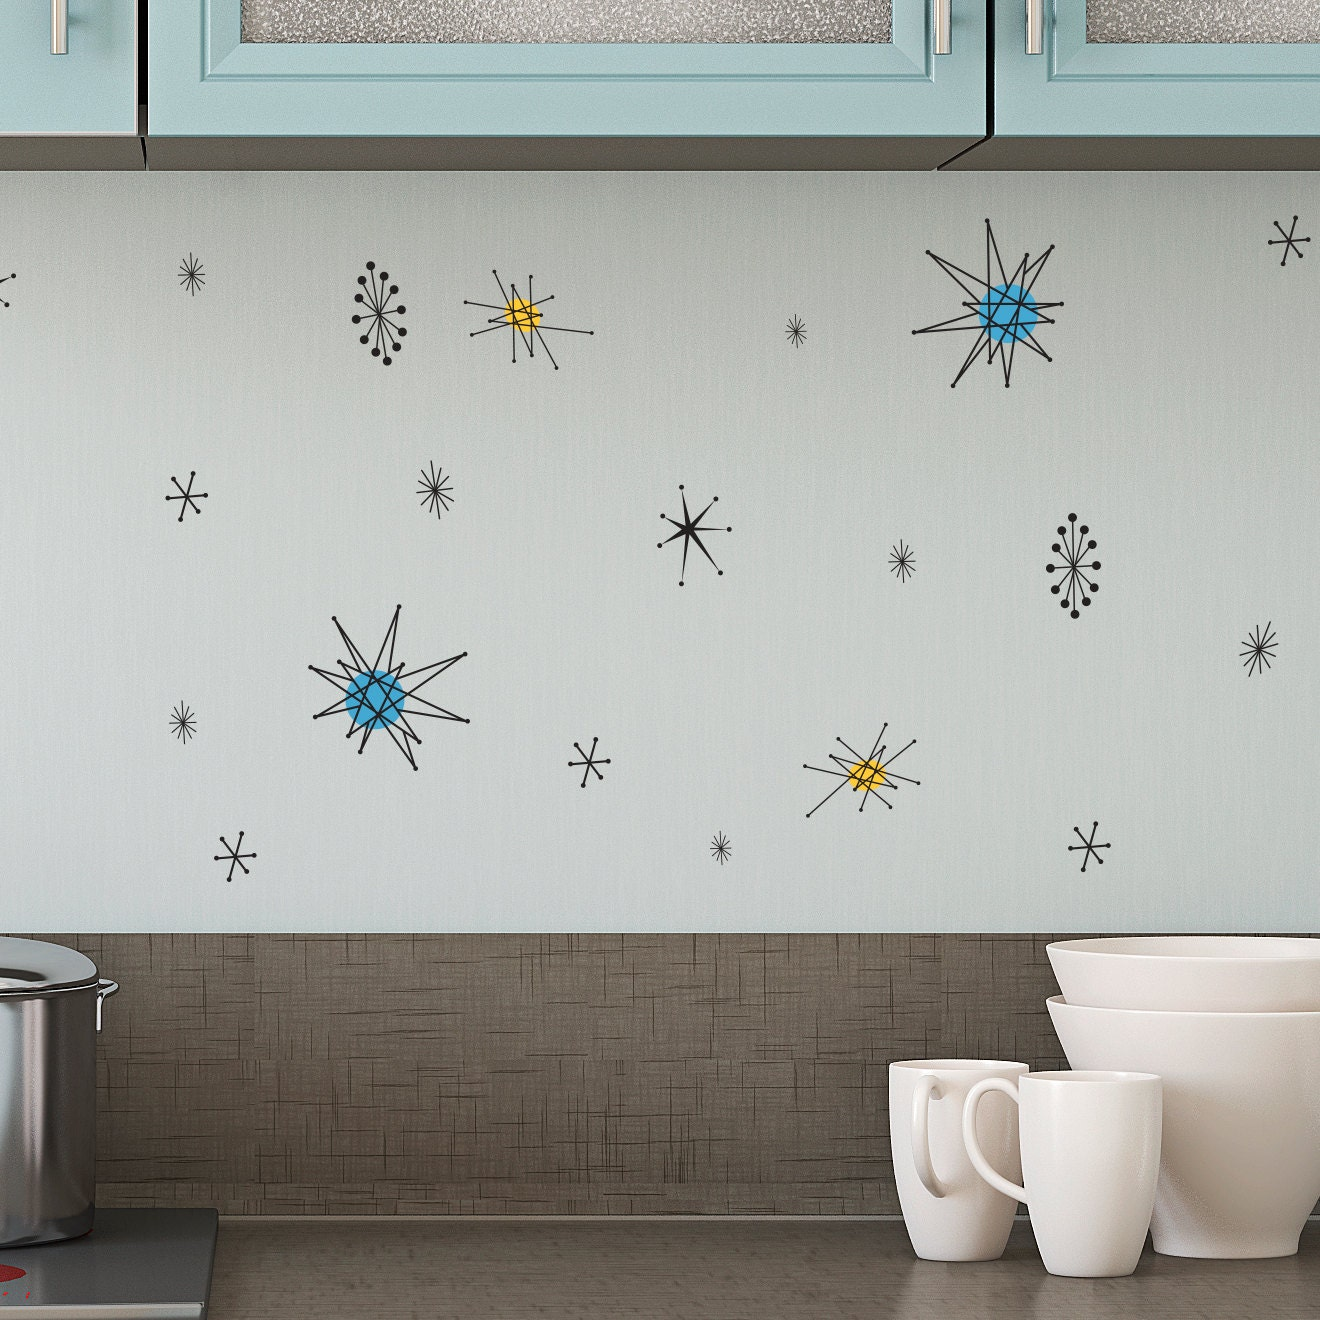 Retro Atomic Shapes Vintage Decor Wall Decal Custom Vinyl. Room Dividers Screens. Cheap Rooms In Ocean City Md. Pom Poms Decorations. Decorative Wall Medallions. Graduation Party Decorations Ideas. Chalkboard Decorations. Decorative Return Air Vent Cover. Room Divider Curtain Track